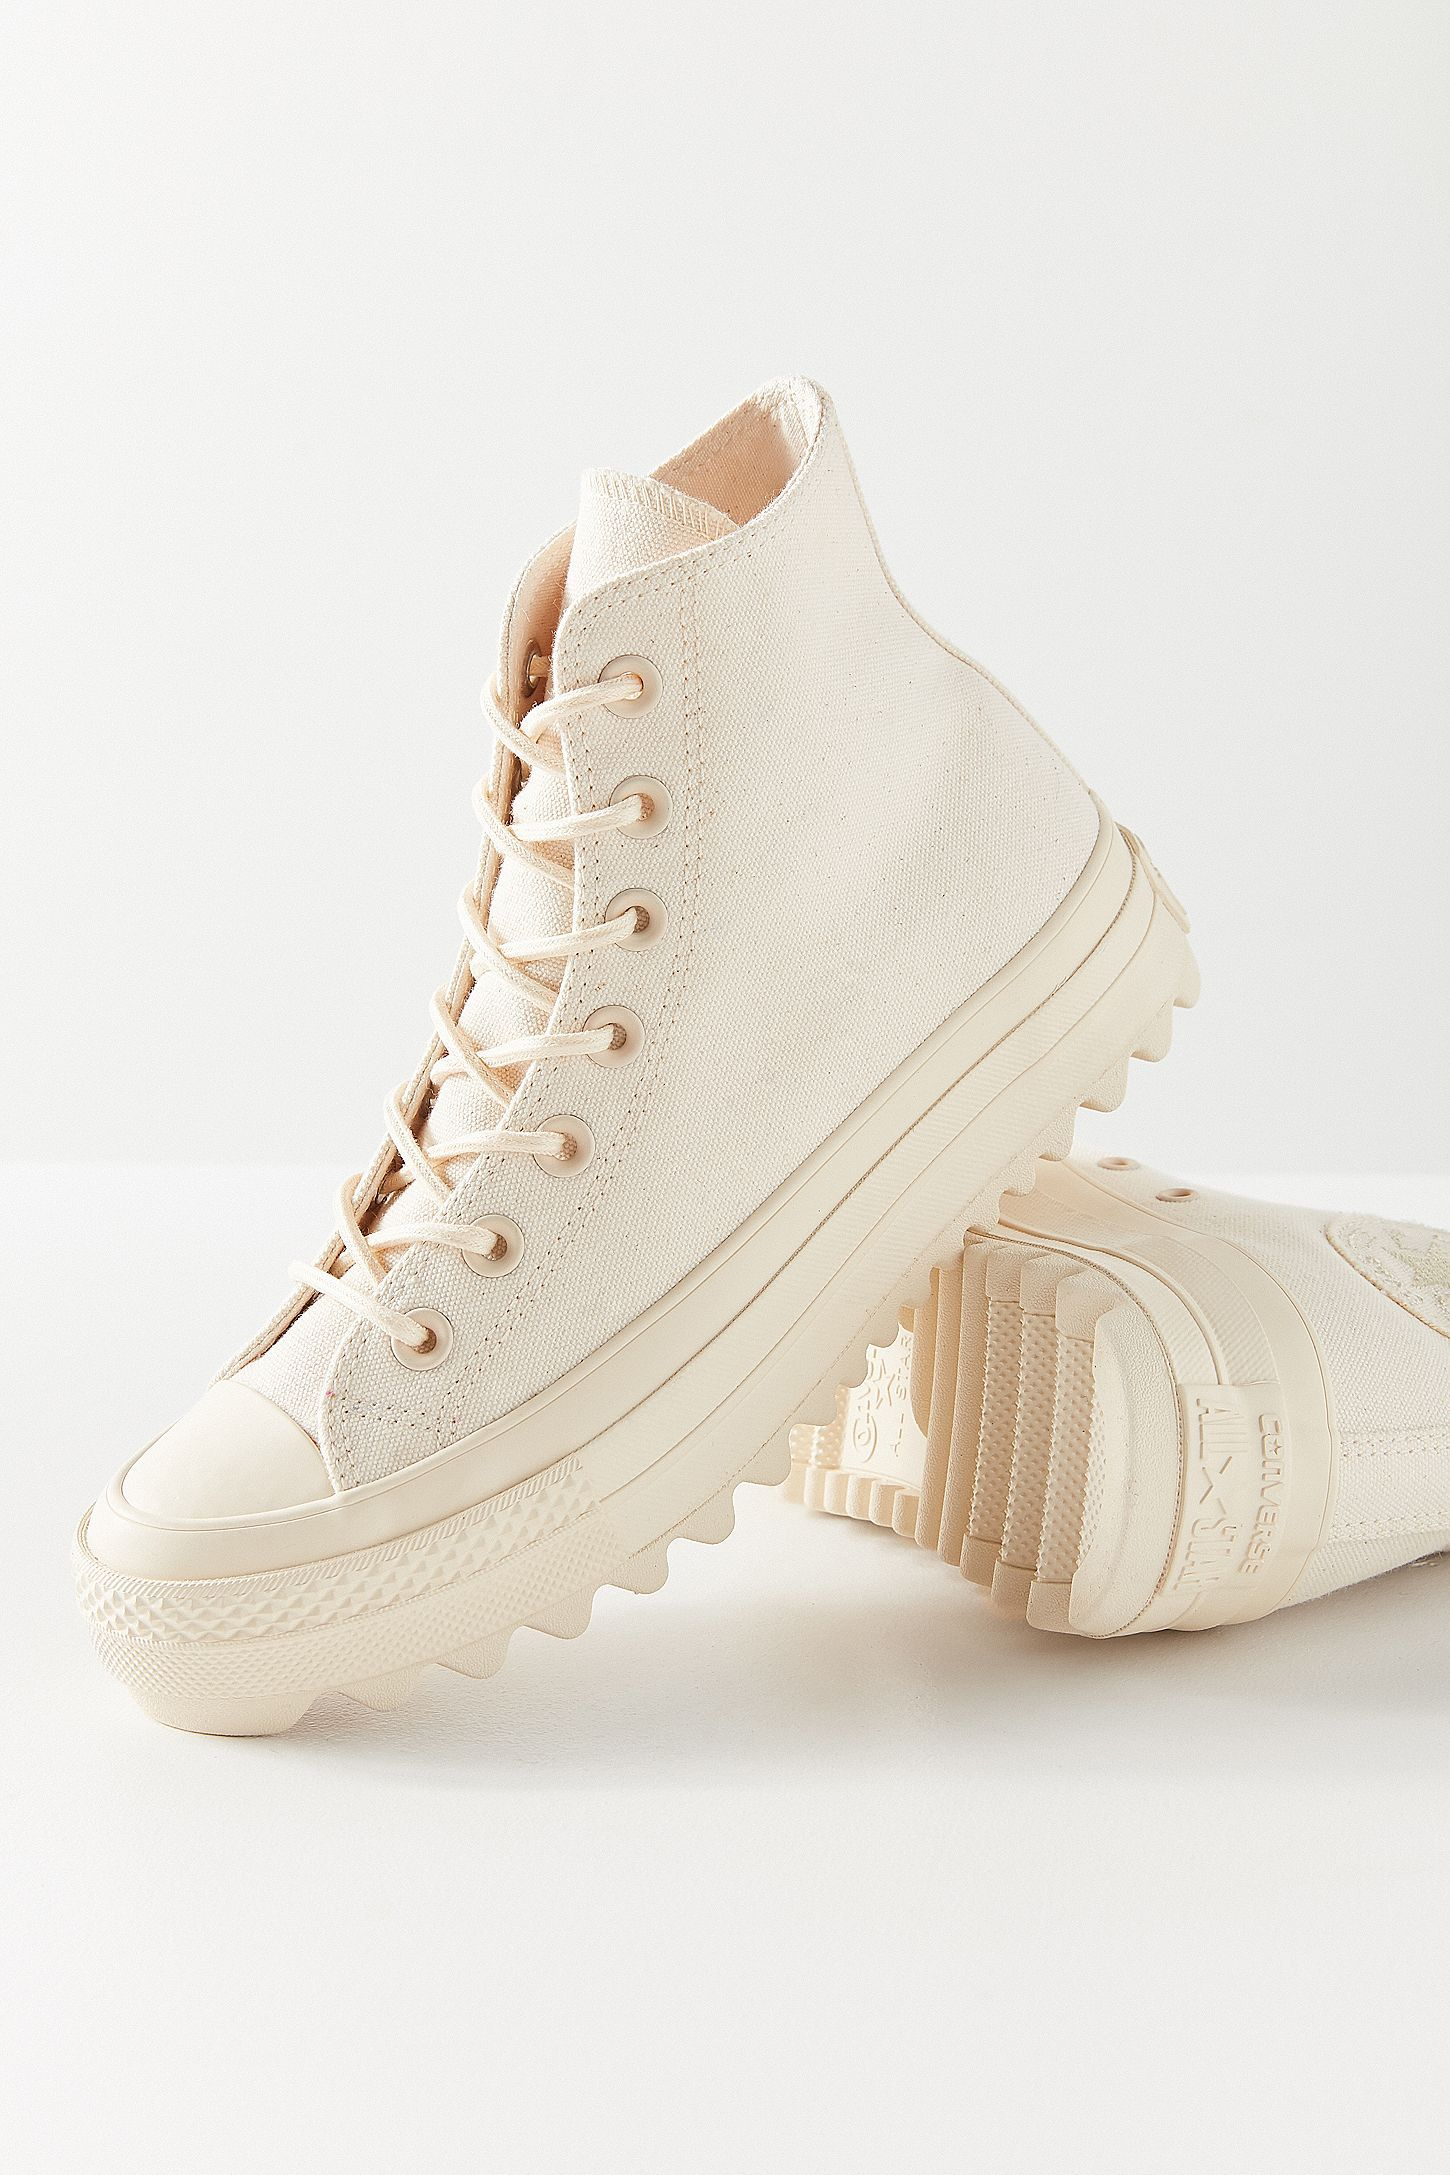 8185b608970 Slide View: 1: Converse Chuck Taylor All Star Lift Ripple High Top Sneaker